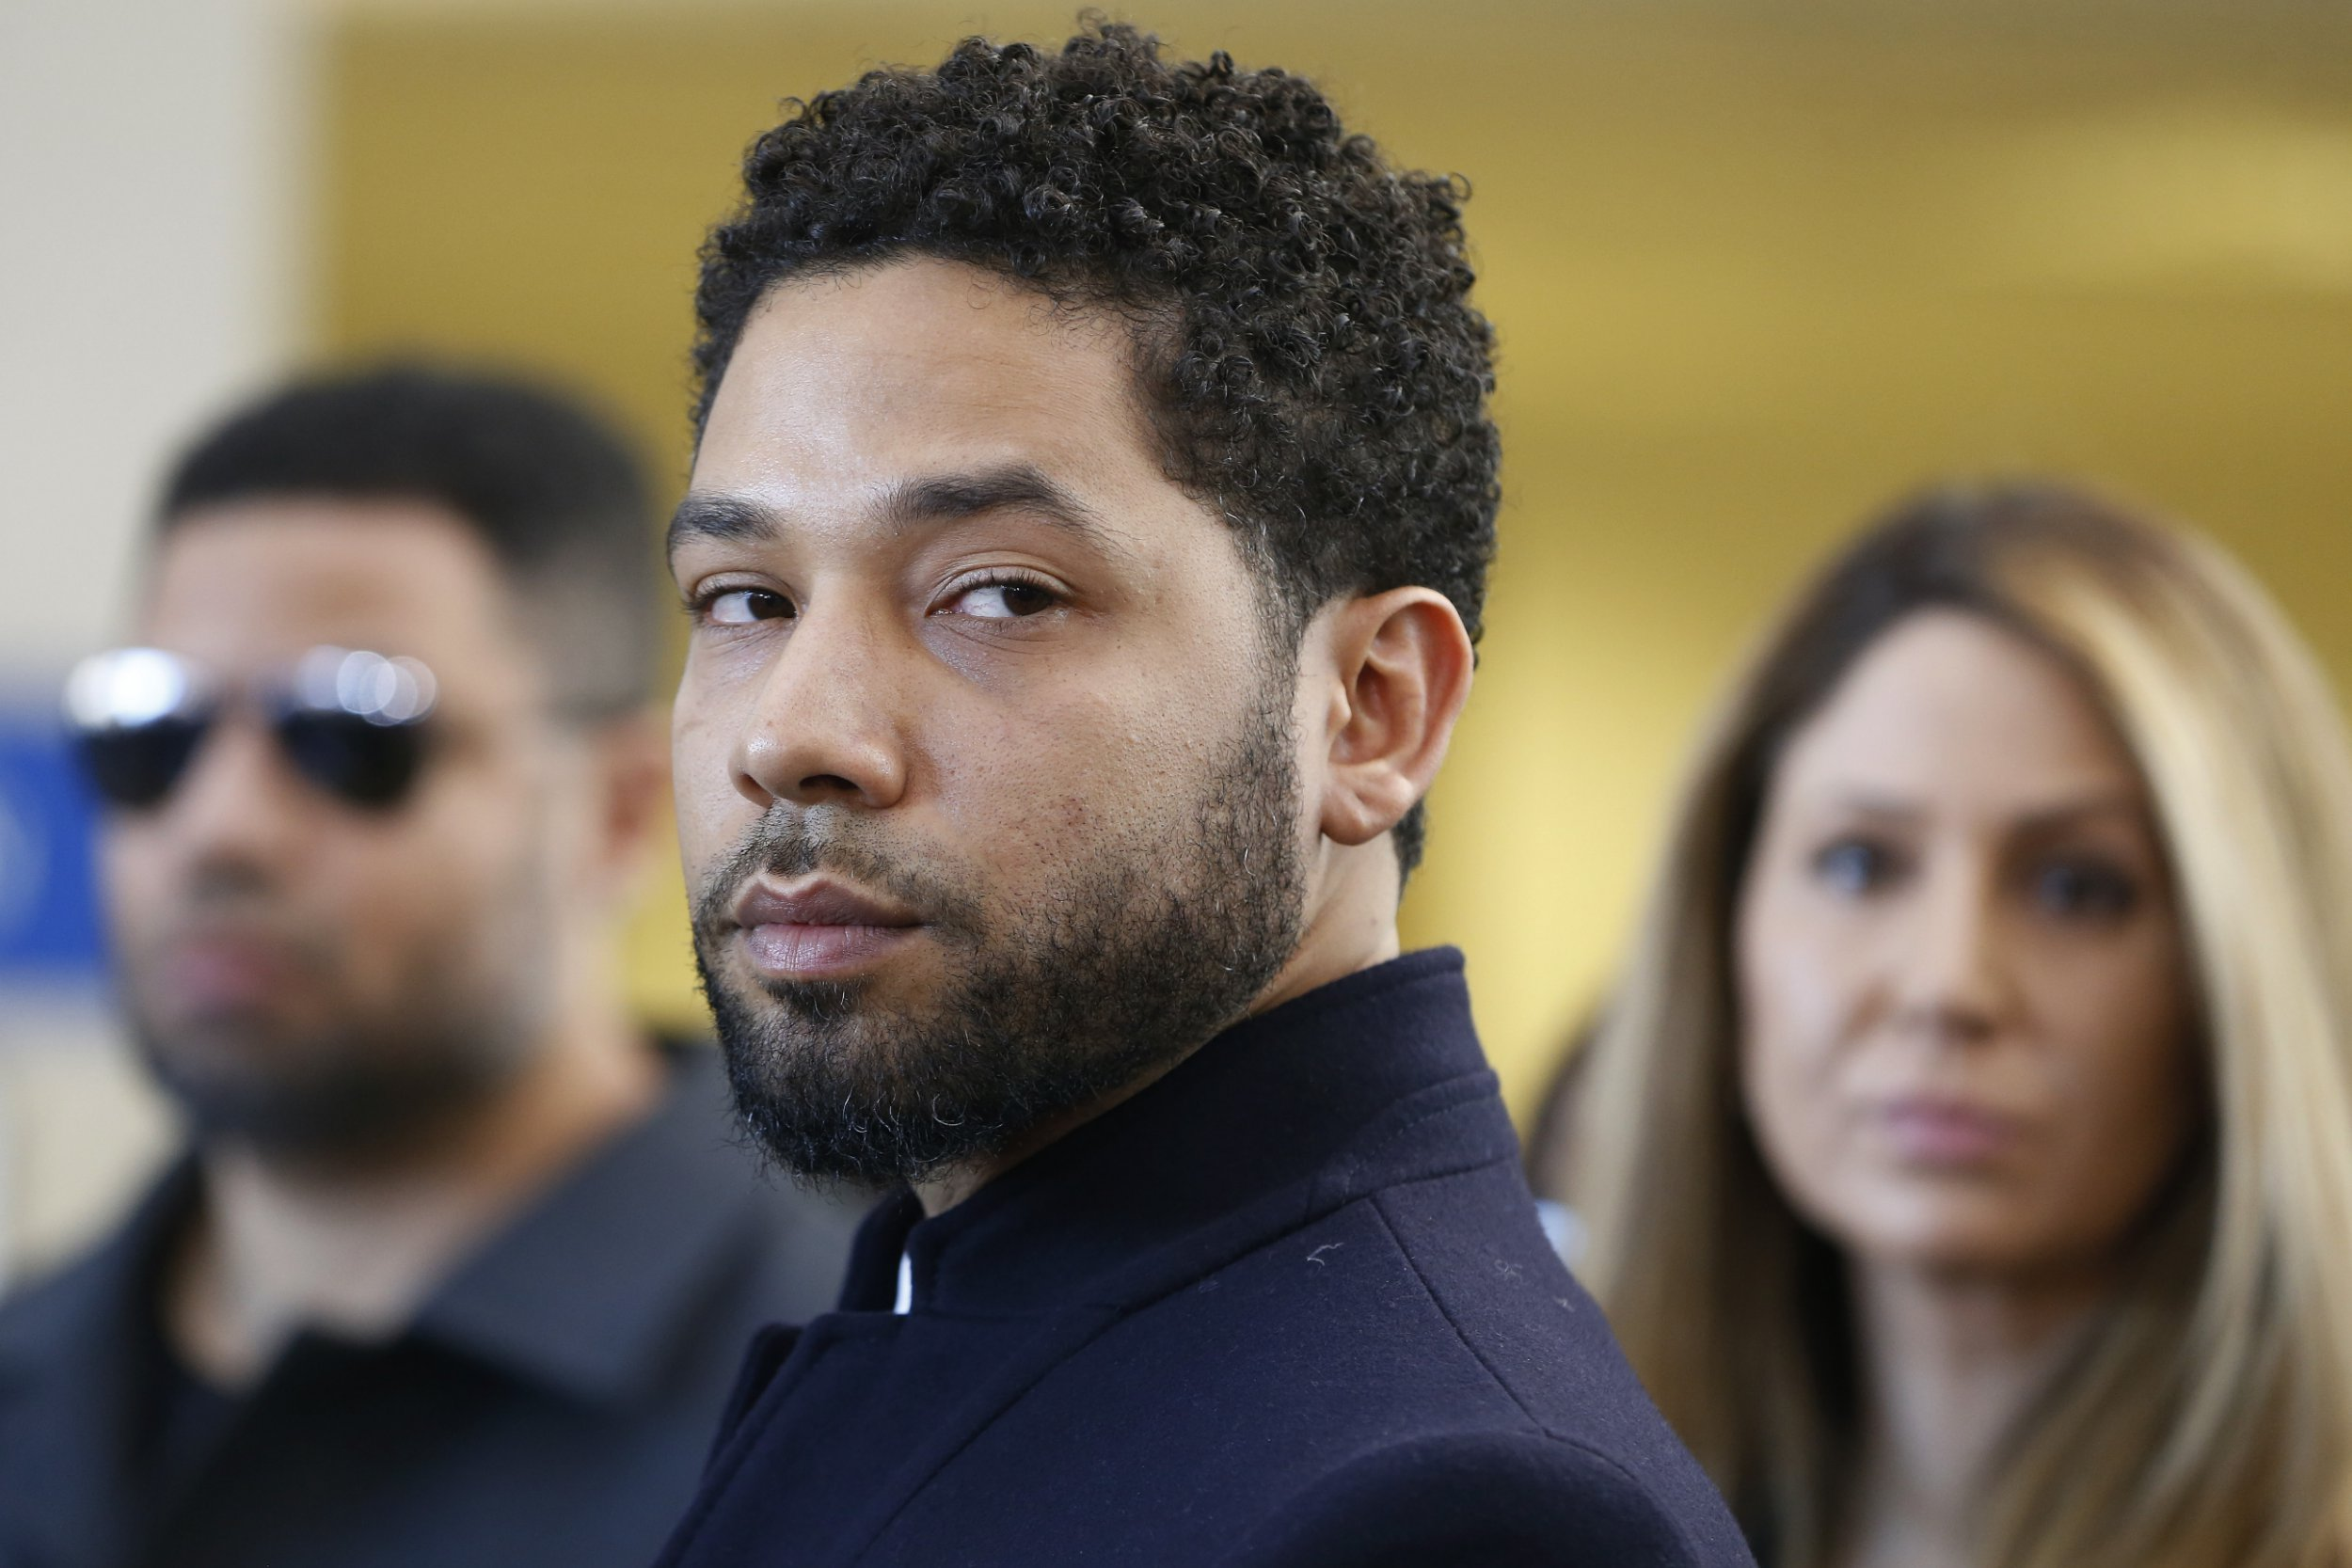 Jussie Smollett's attorney accuses Chicago officials of continuing 'campaign' against Empire actor